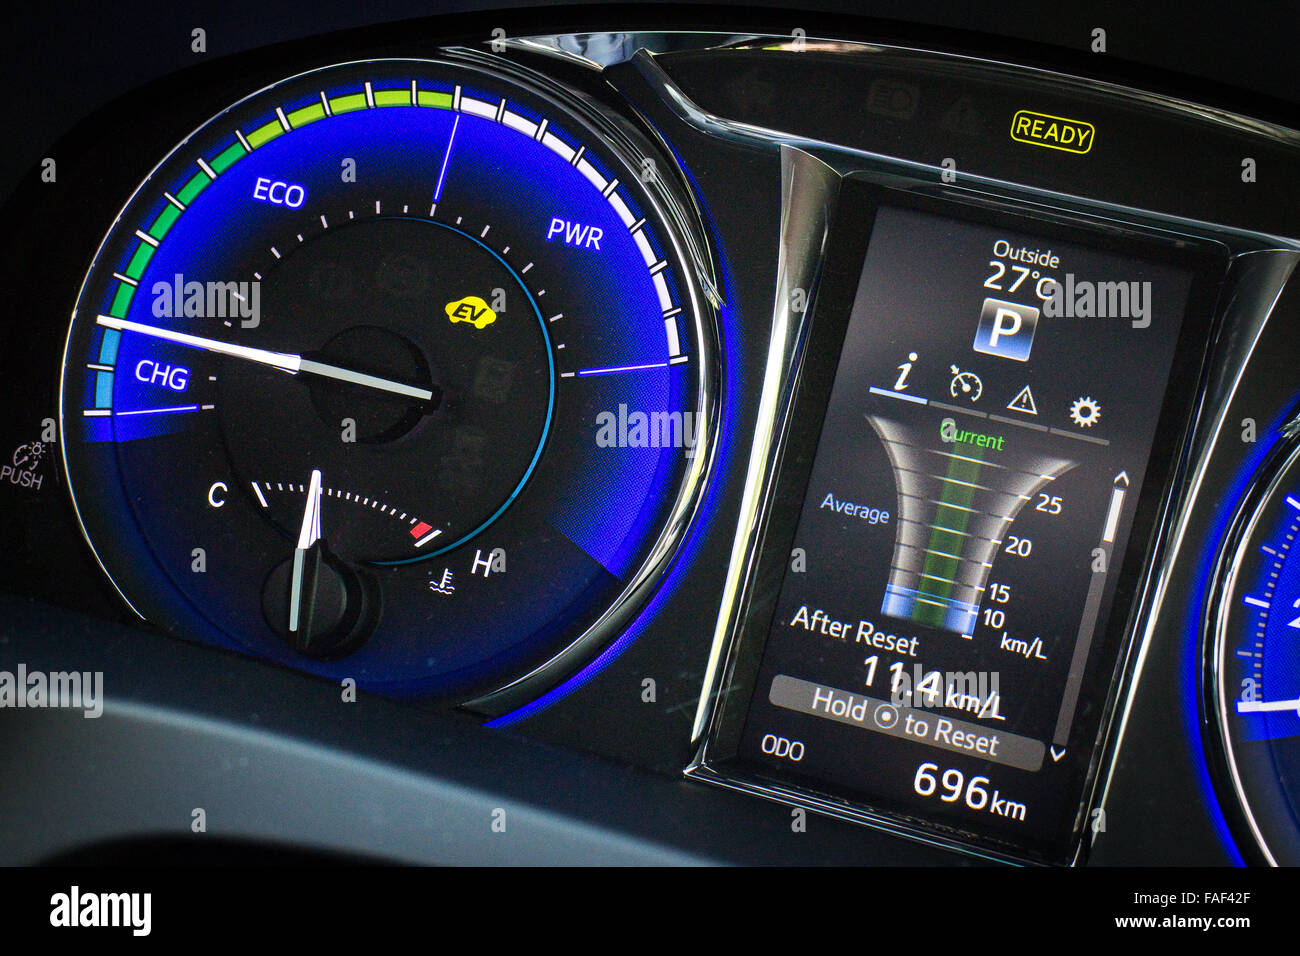 hight resolution of hong kong china oct 27 2014 toyota camry hybrid 2014 dashboard on oct